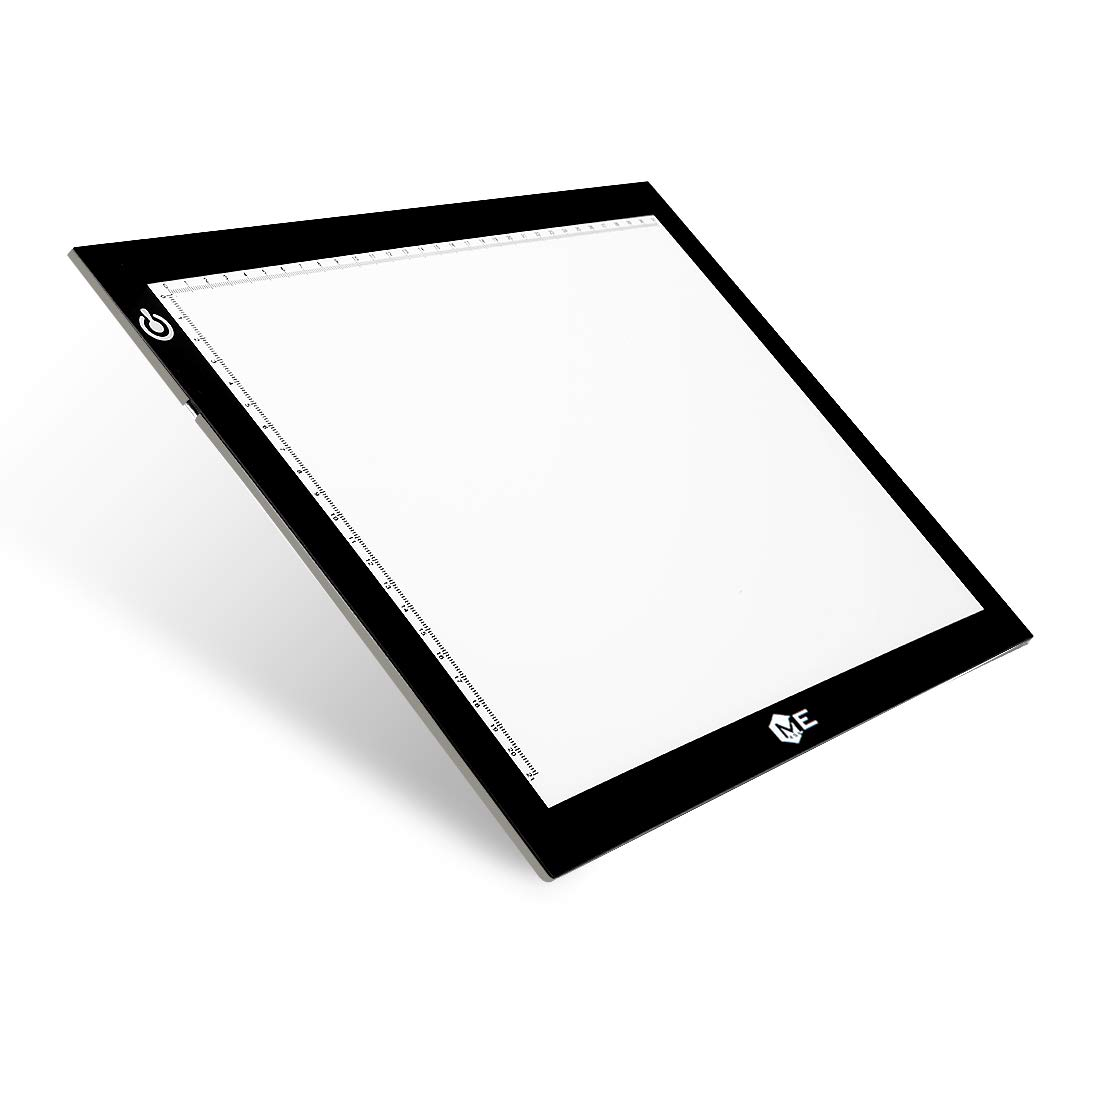 Dimmable A4 LED Tracer Light Box Slim Light Pad, ME456 USB Power Drawing Copy Board Tattoo Tracing LED Light Table for Artists Designing, Animation, Sketching, Stenciling (Black)